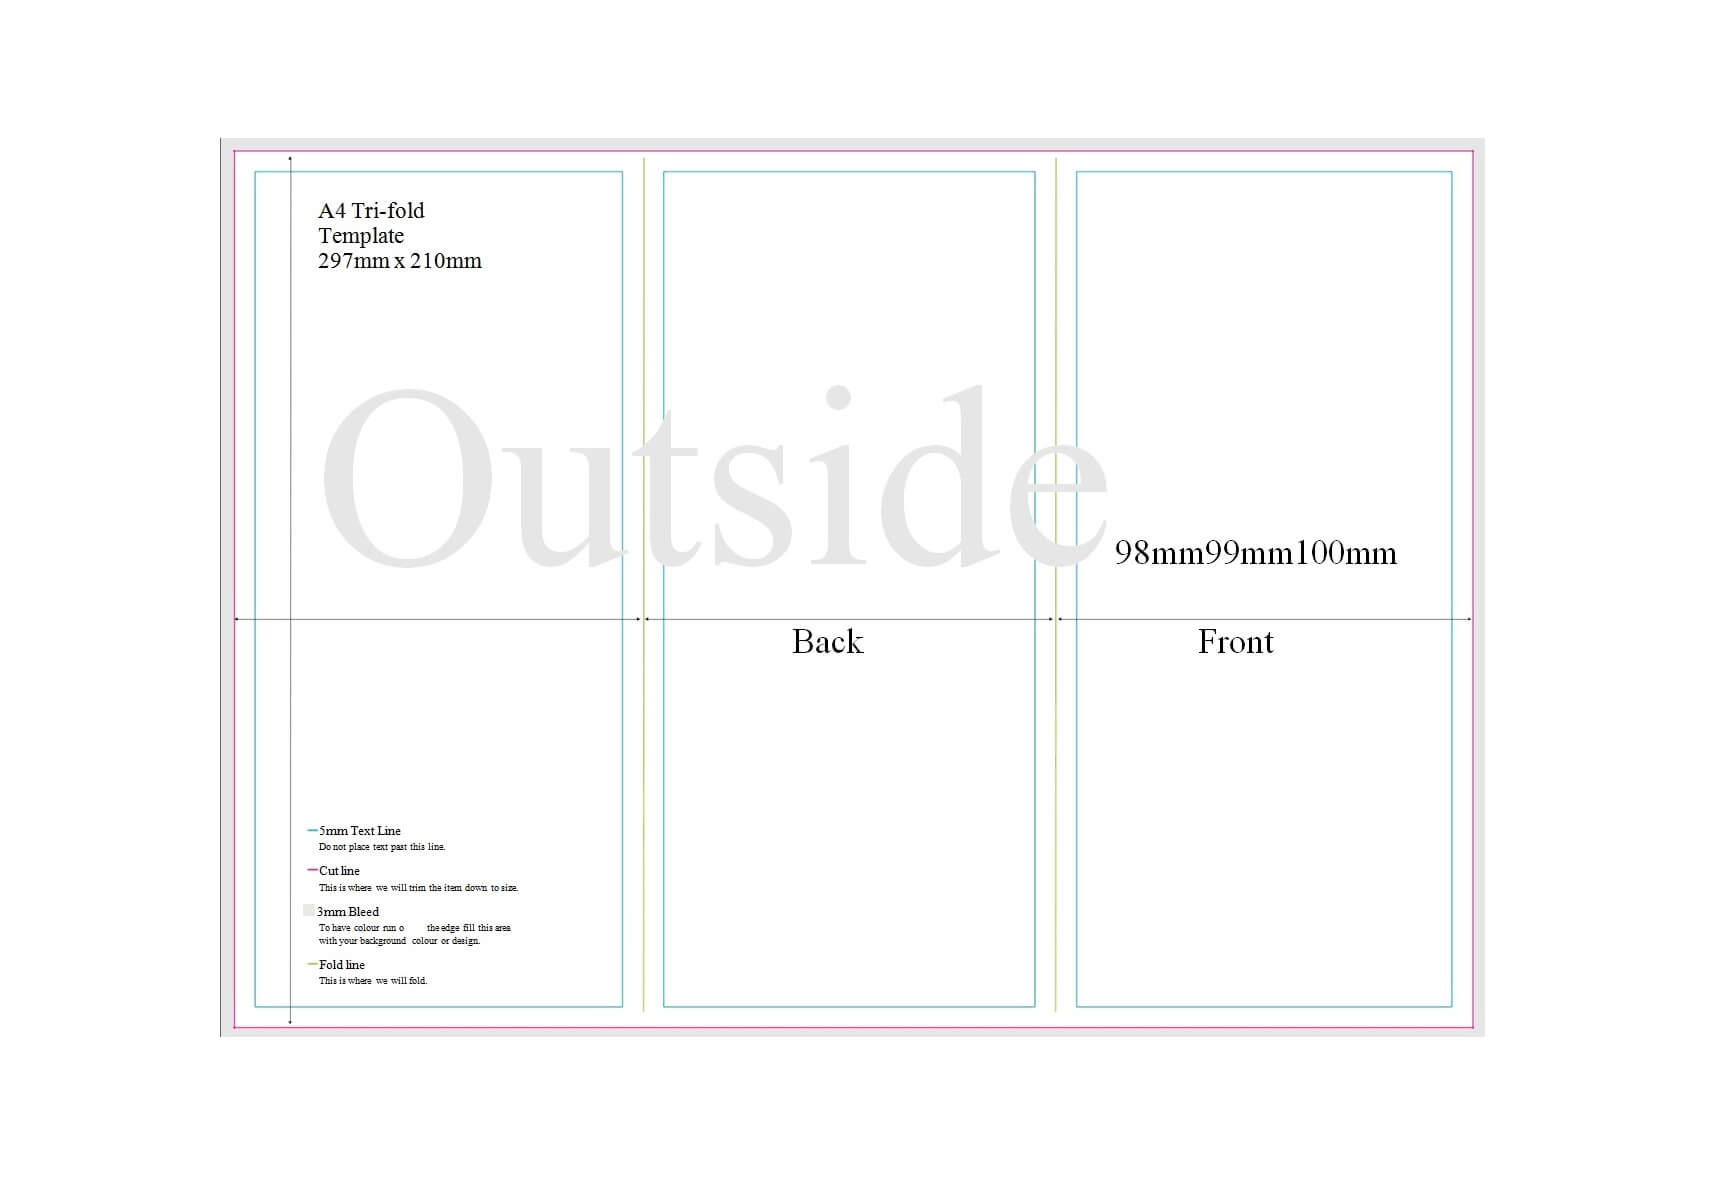 50 Free Pamphlet Templates [Word / Google Docs] ᐅ Templatelab With Regard To Brochure Template For Google Docs